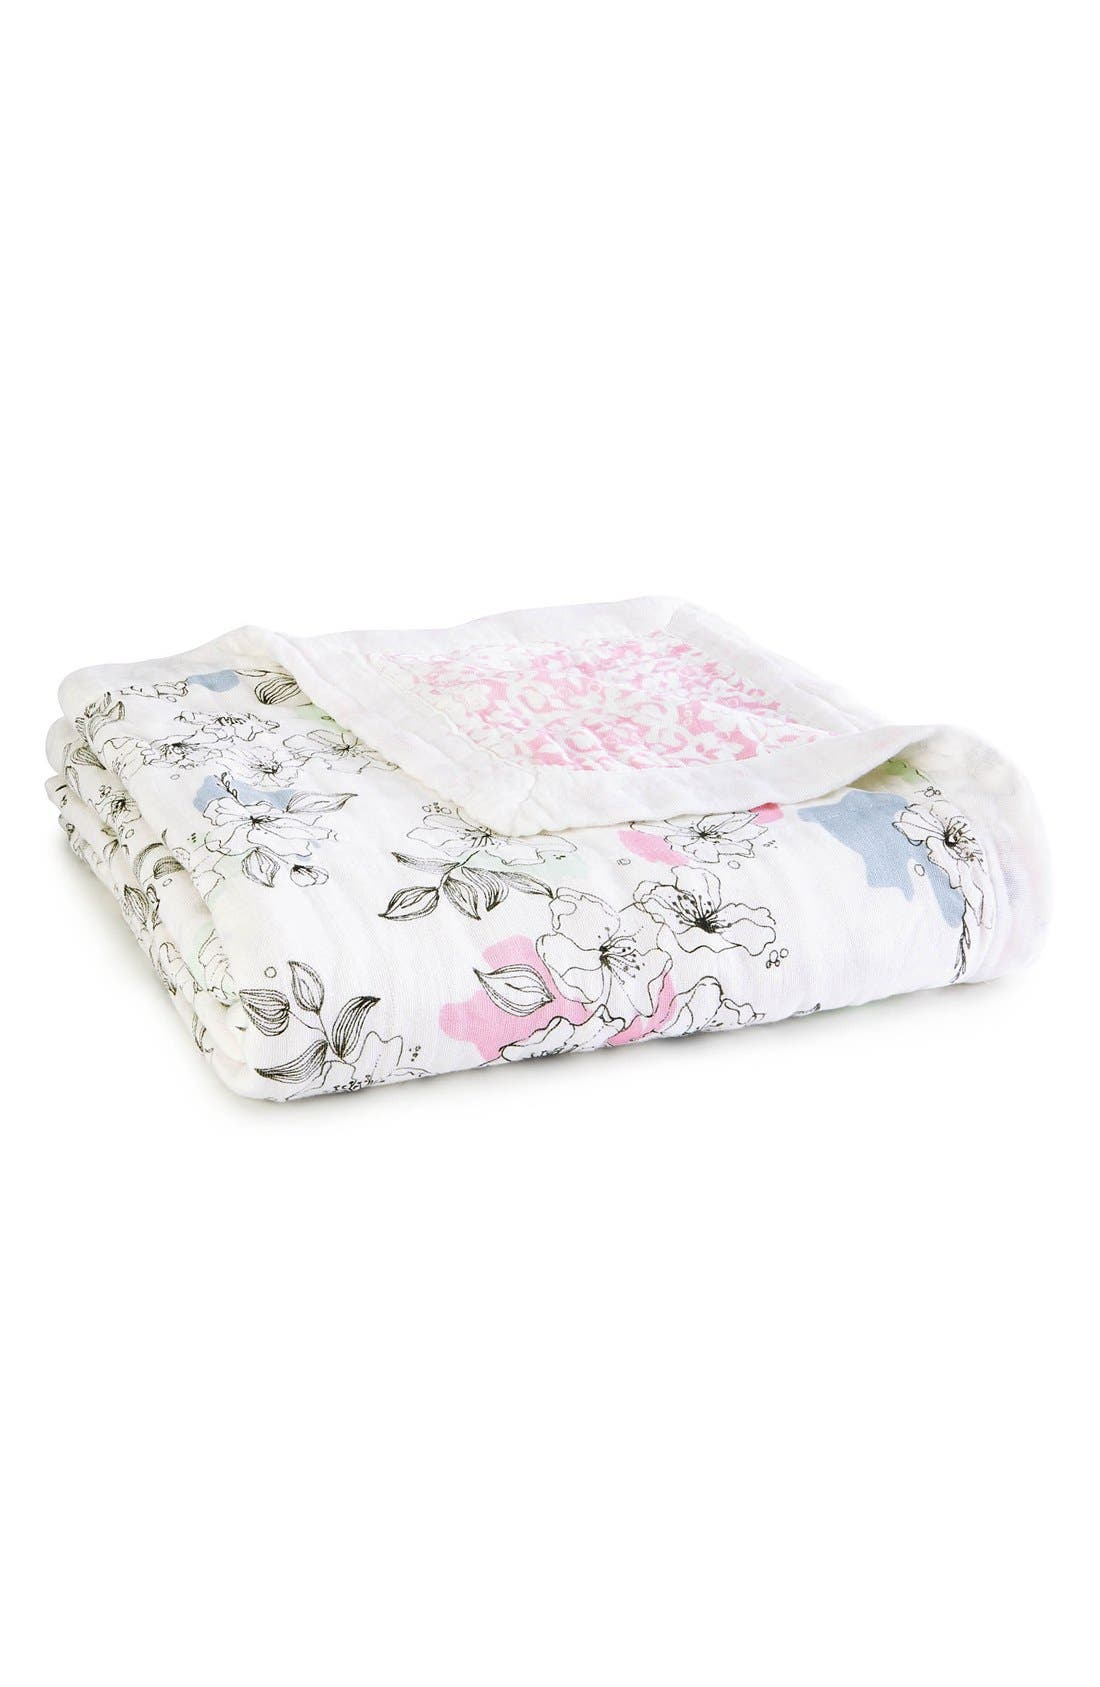 aden + anais 'Silky Soft Dream' Blanket